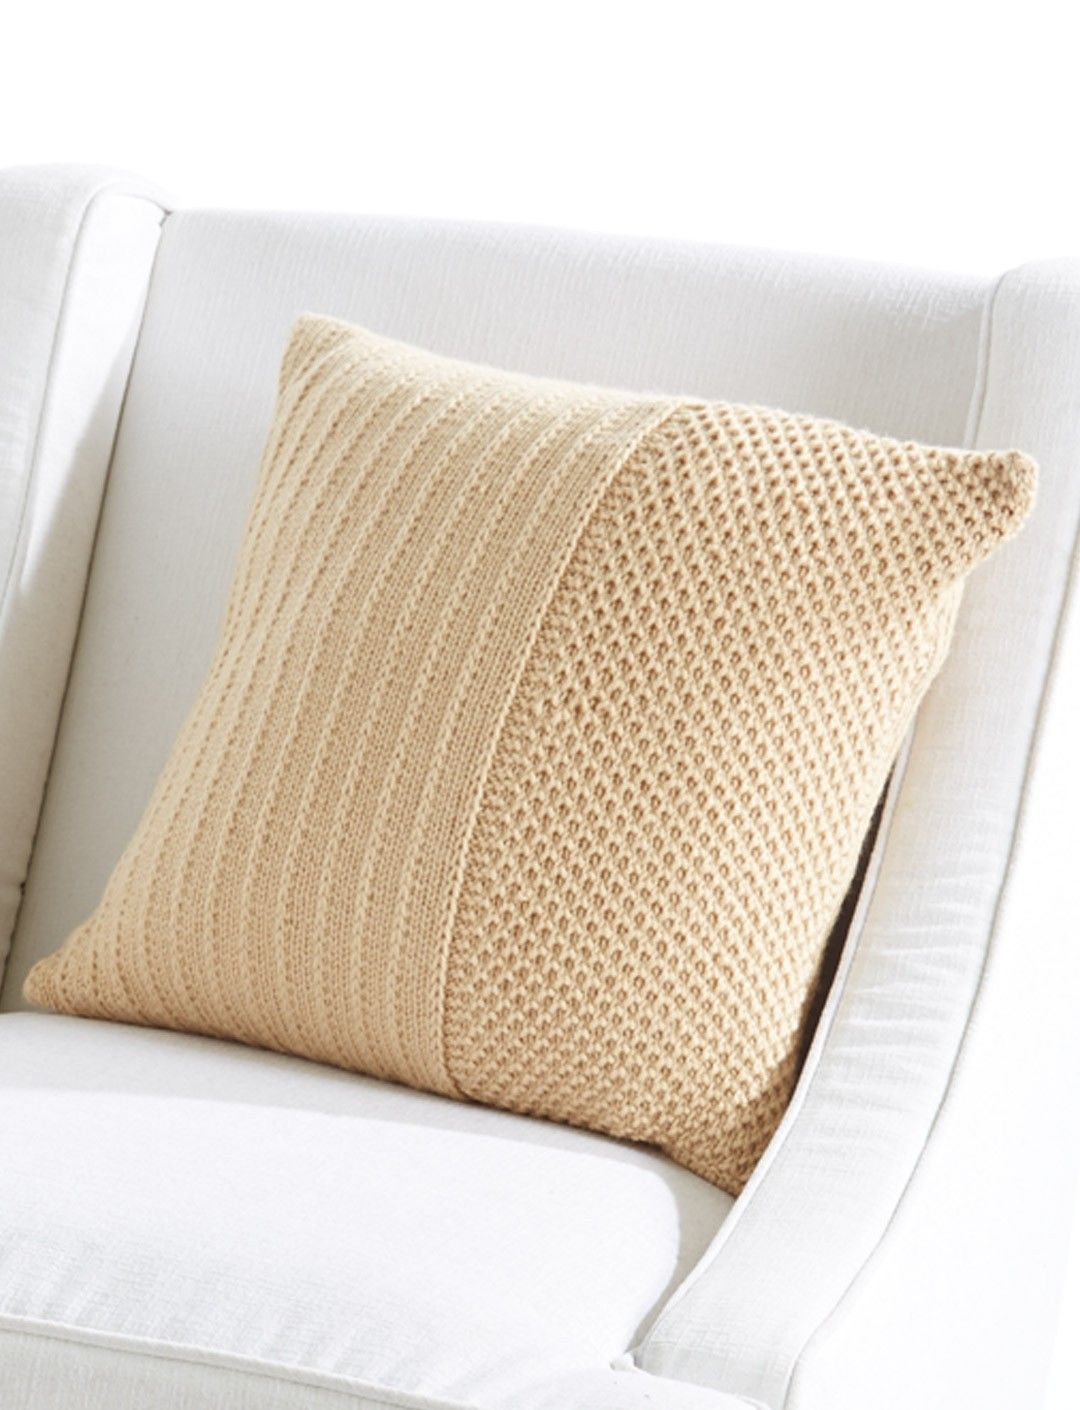 Classic Textures Pillow knit pattern free | Knit Pillow Patterns ...